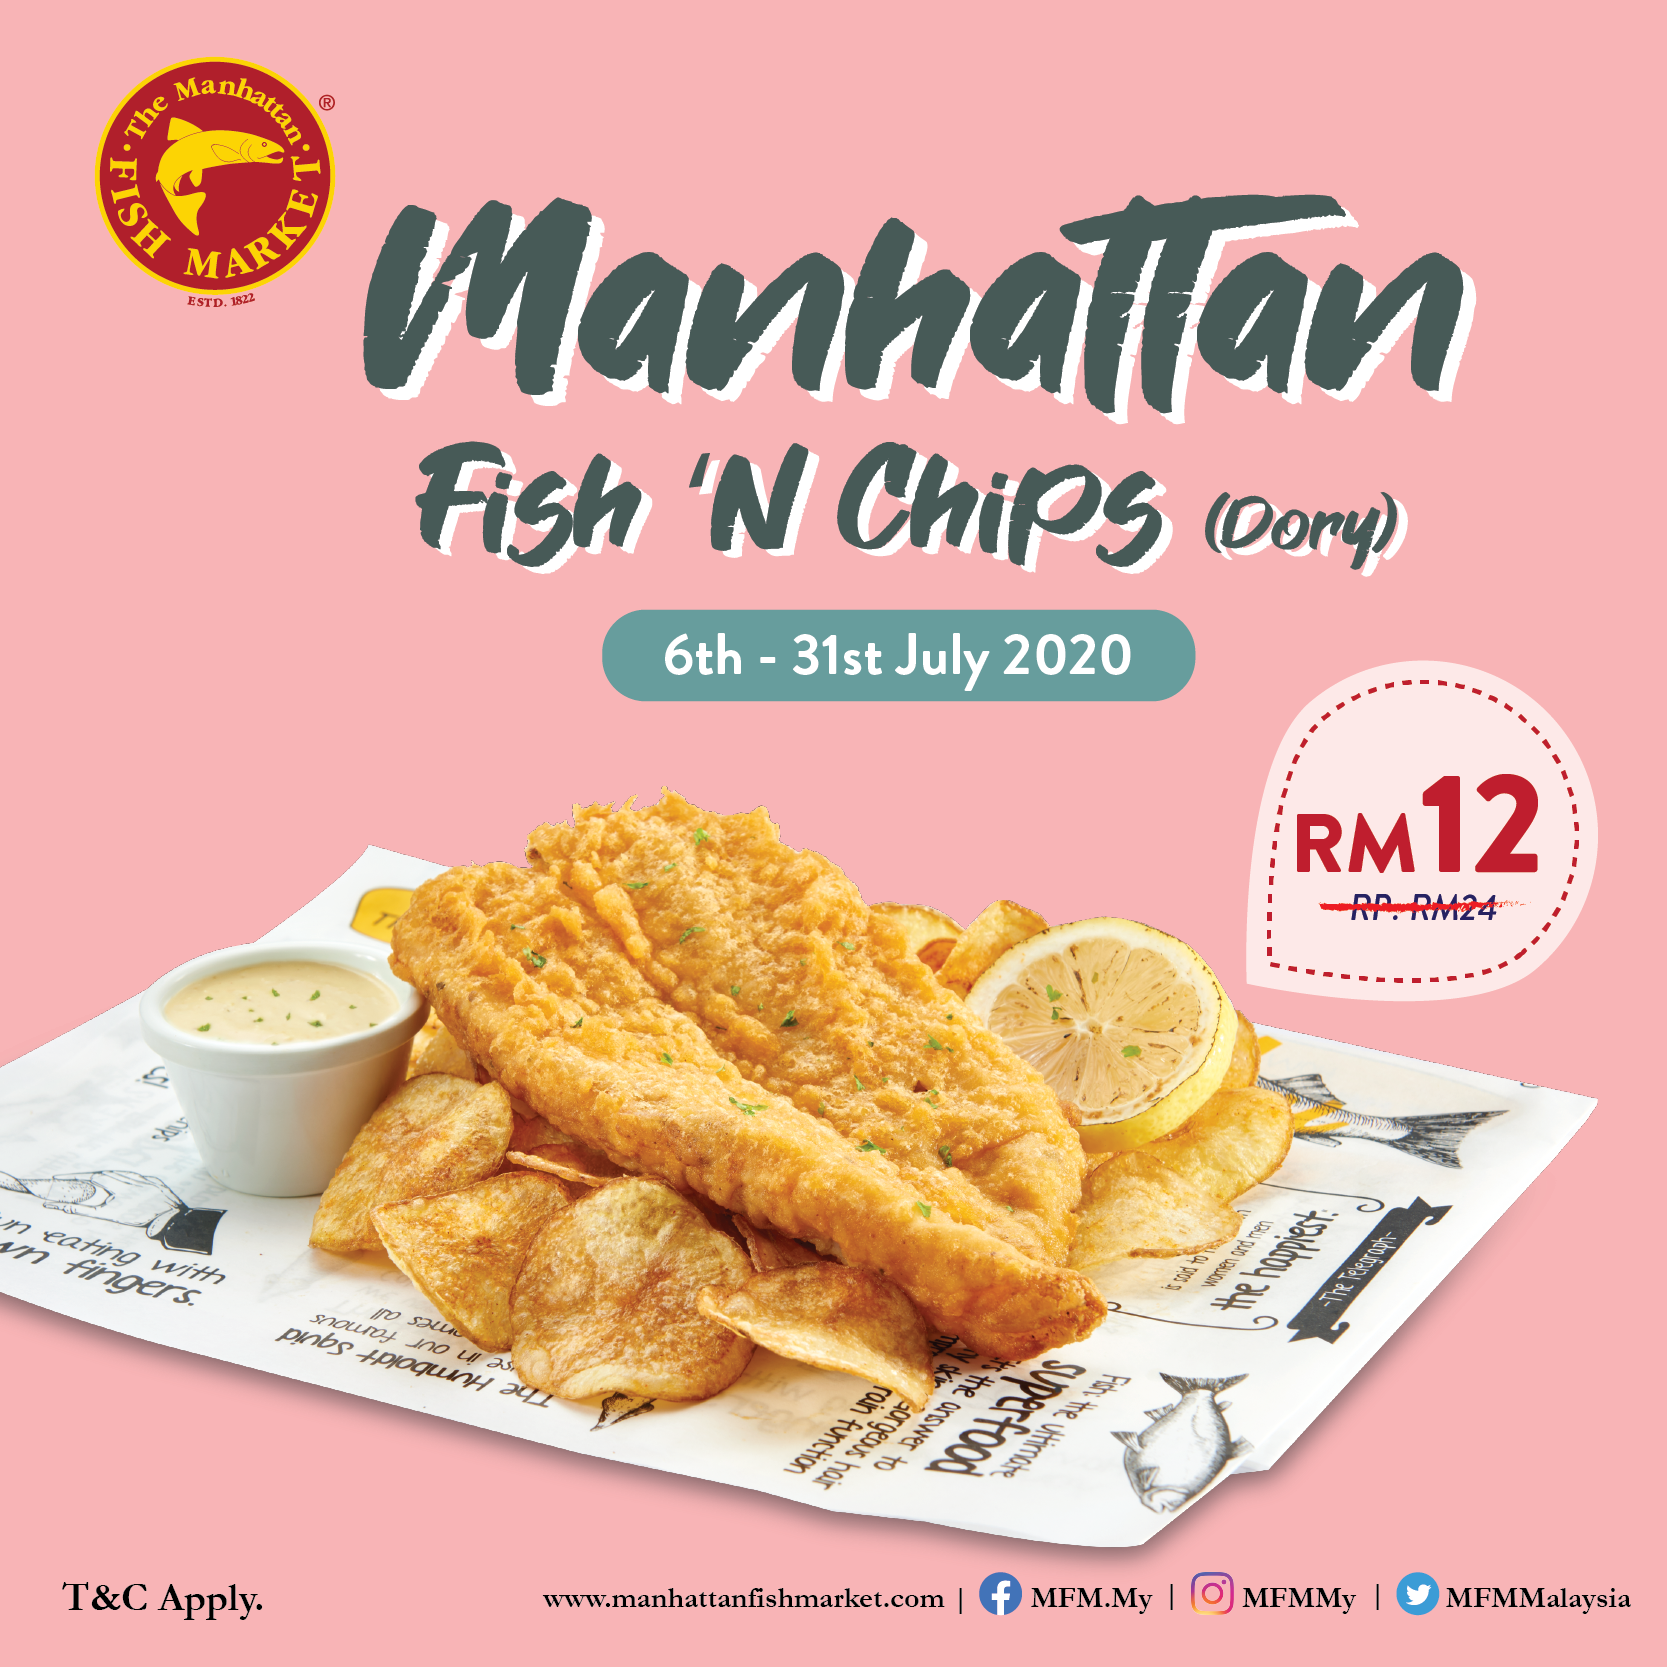 Manhattan-Fish-Market-Fish-n-Chips-Dory